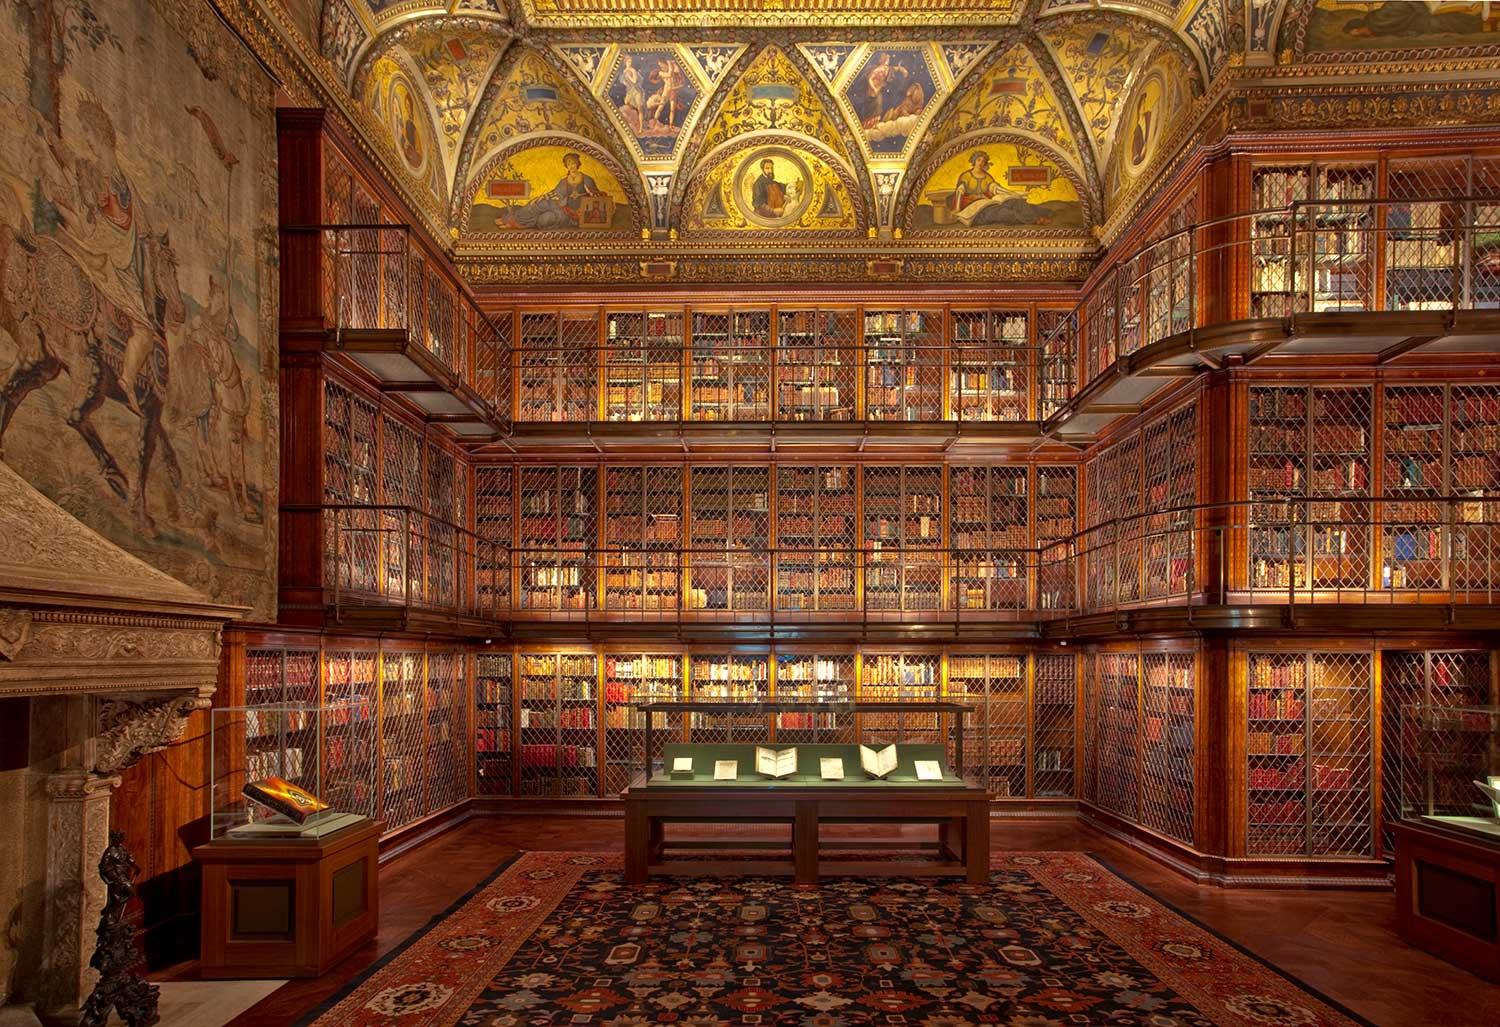 5-pierpont-morgan-s-library_2